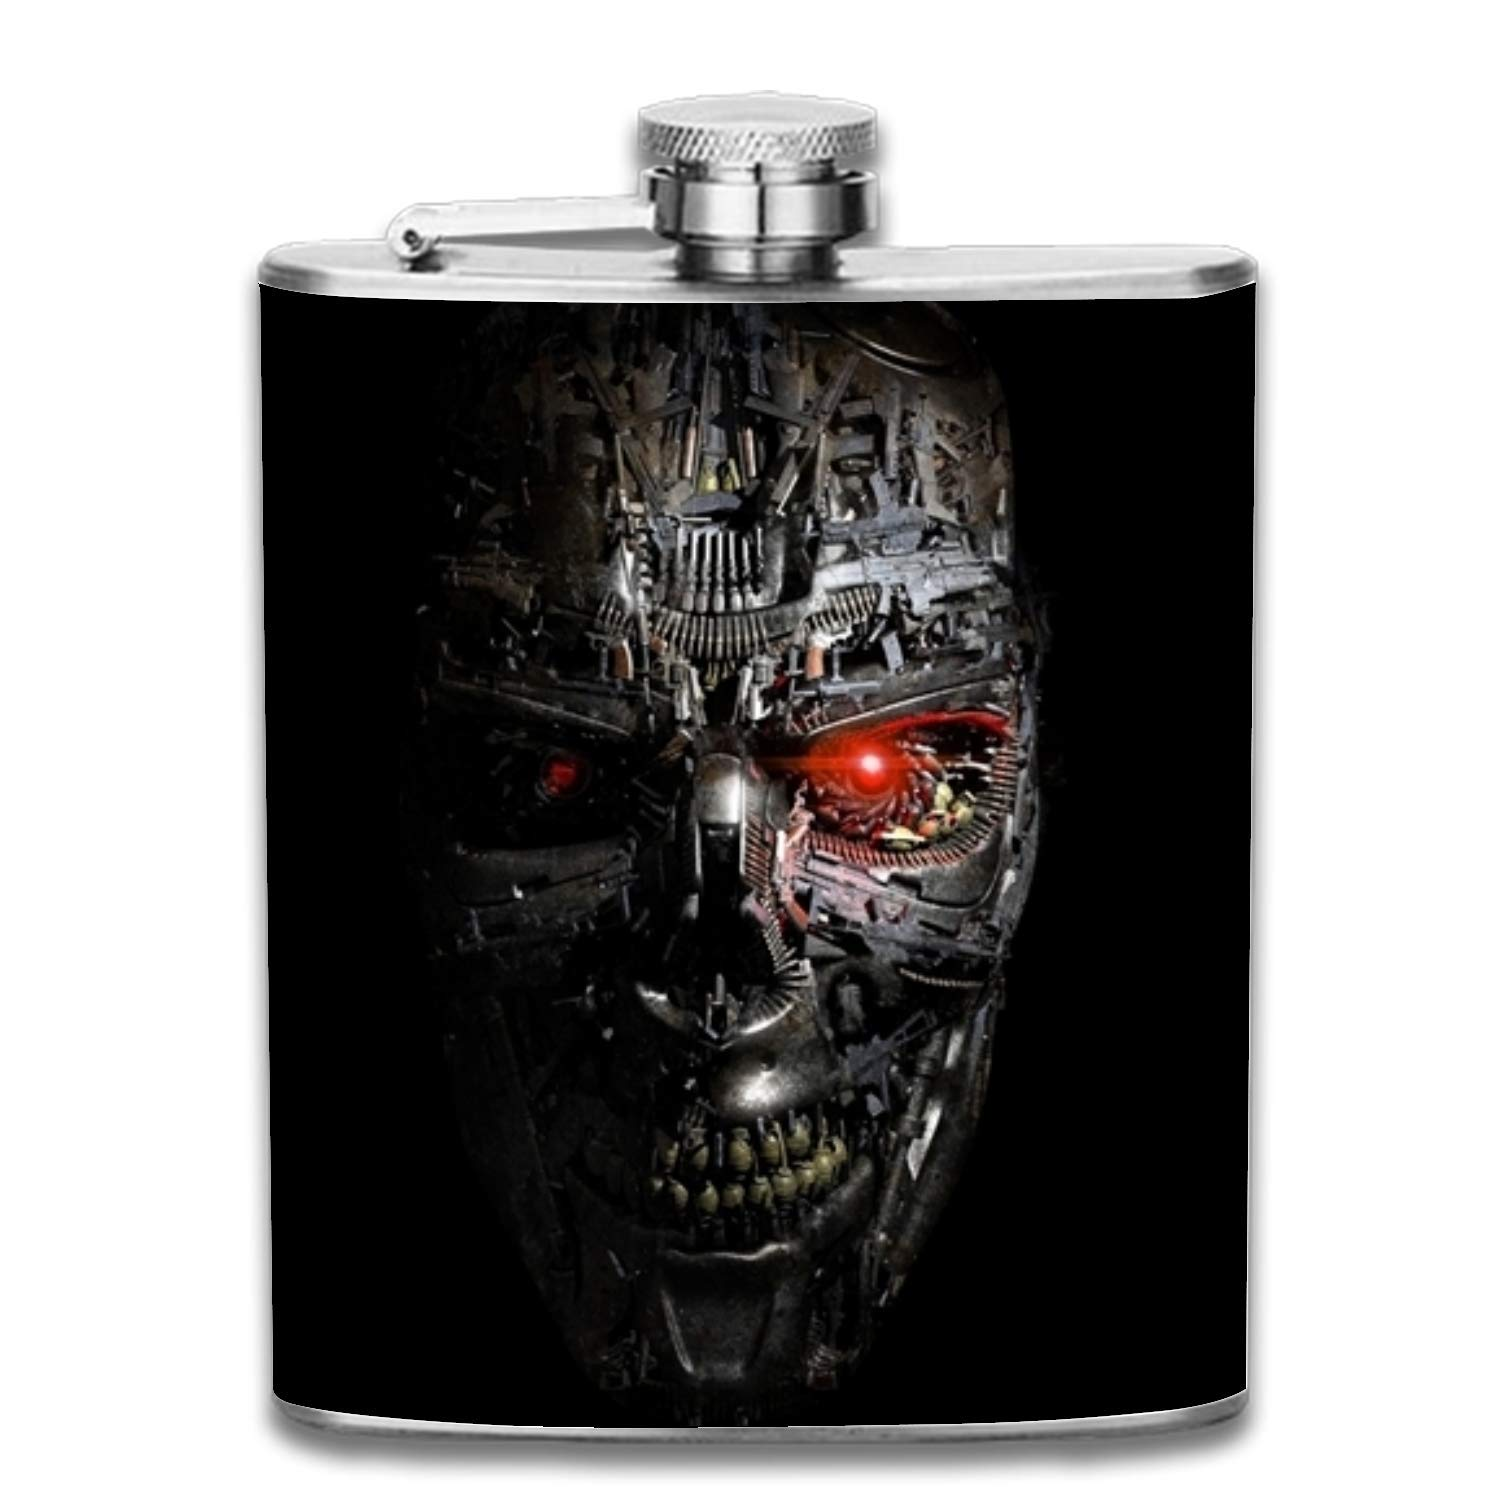 Pink Flowers Portable 304 Stainless Steel Leak-Proof Alcohol Whiskey Liquor Wine 7OZ Pot Hip Flask Travel Camping Flagon for Man Woman Flask Great Little Gift Multicolor3